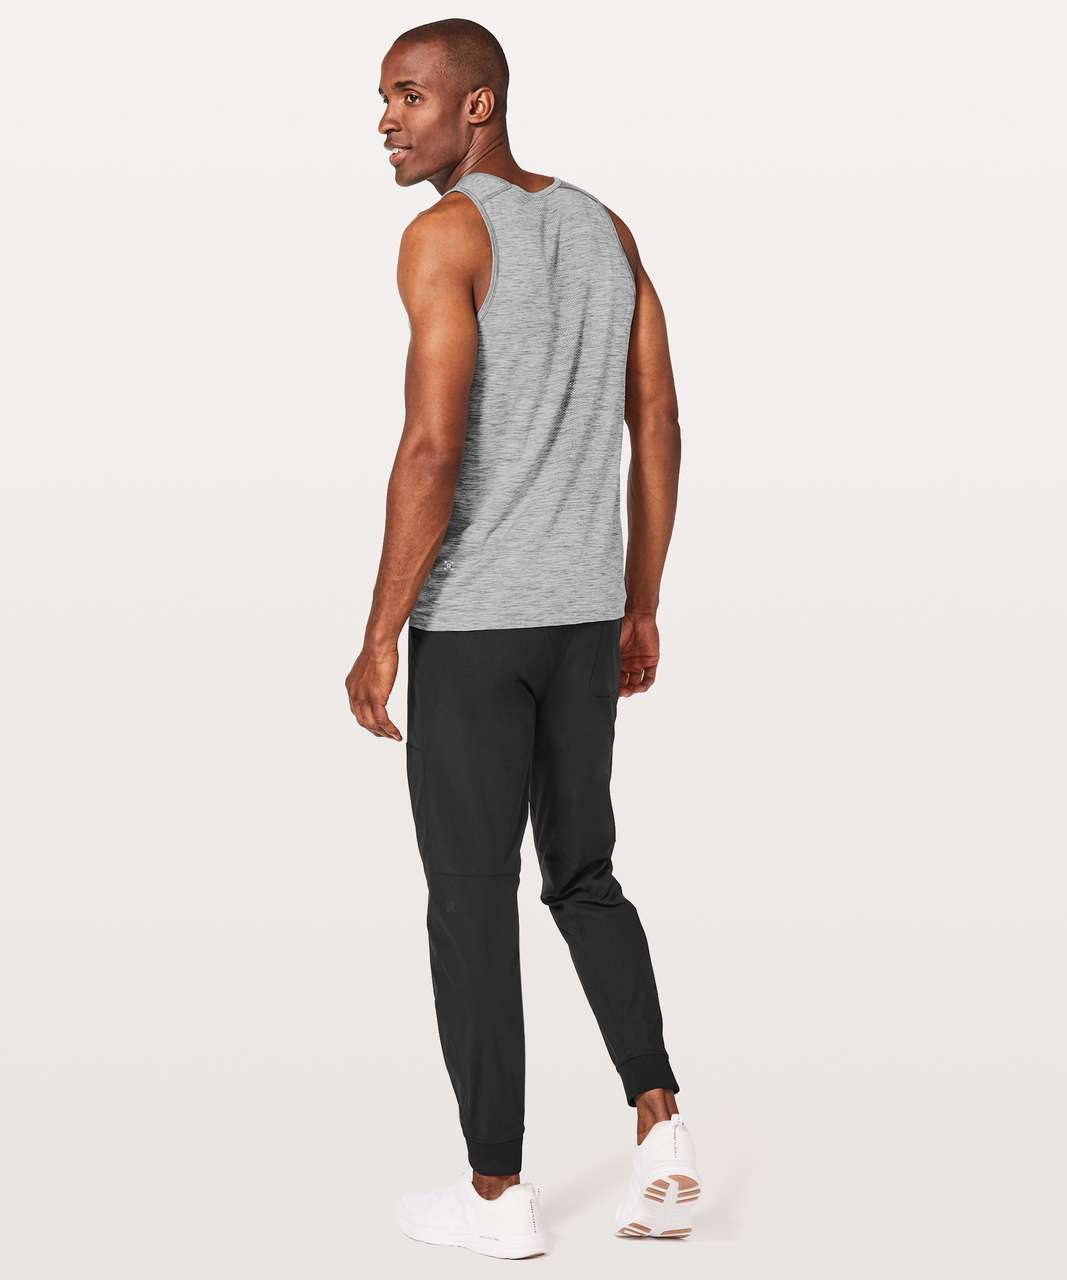 Lululemon Metal Vent Tech Tank - Slate / White